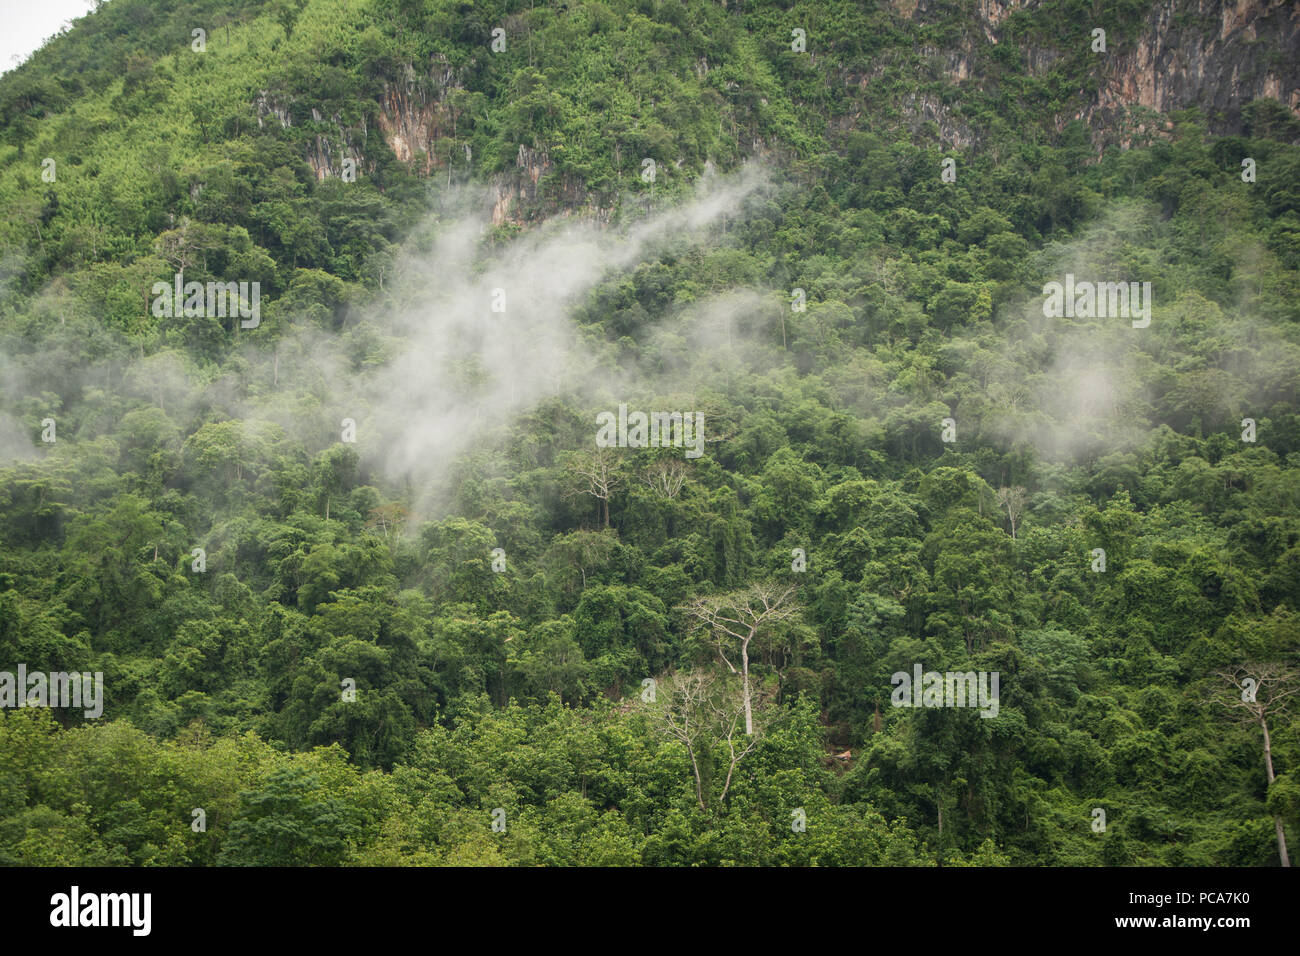 Misty mountains in Nong Khiaw, Laos PDR after the rain. Stock Photo